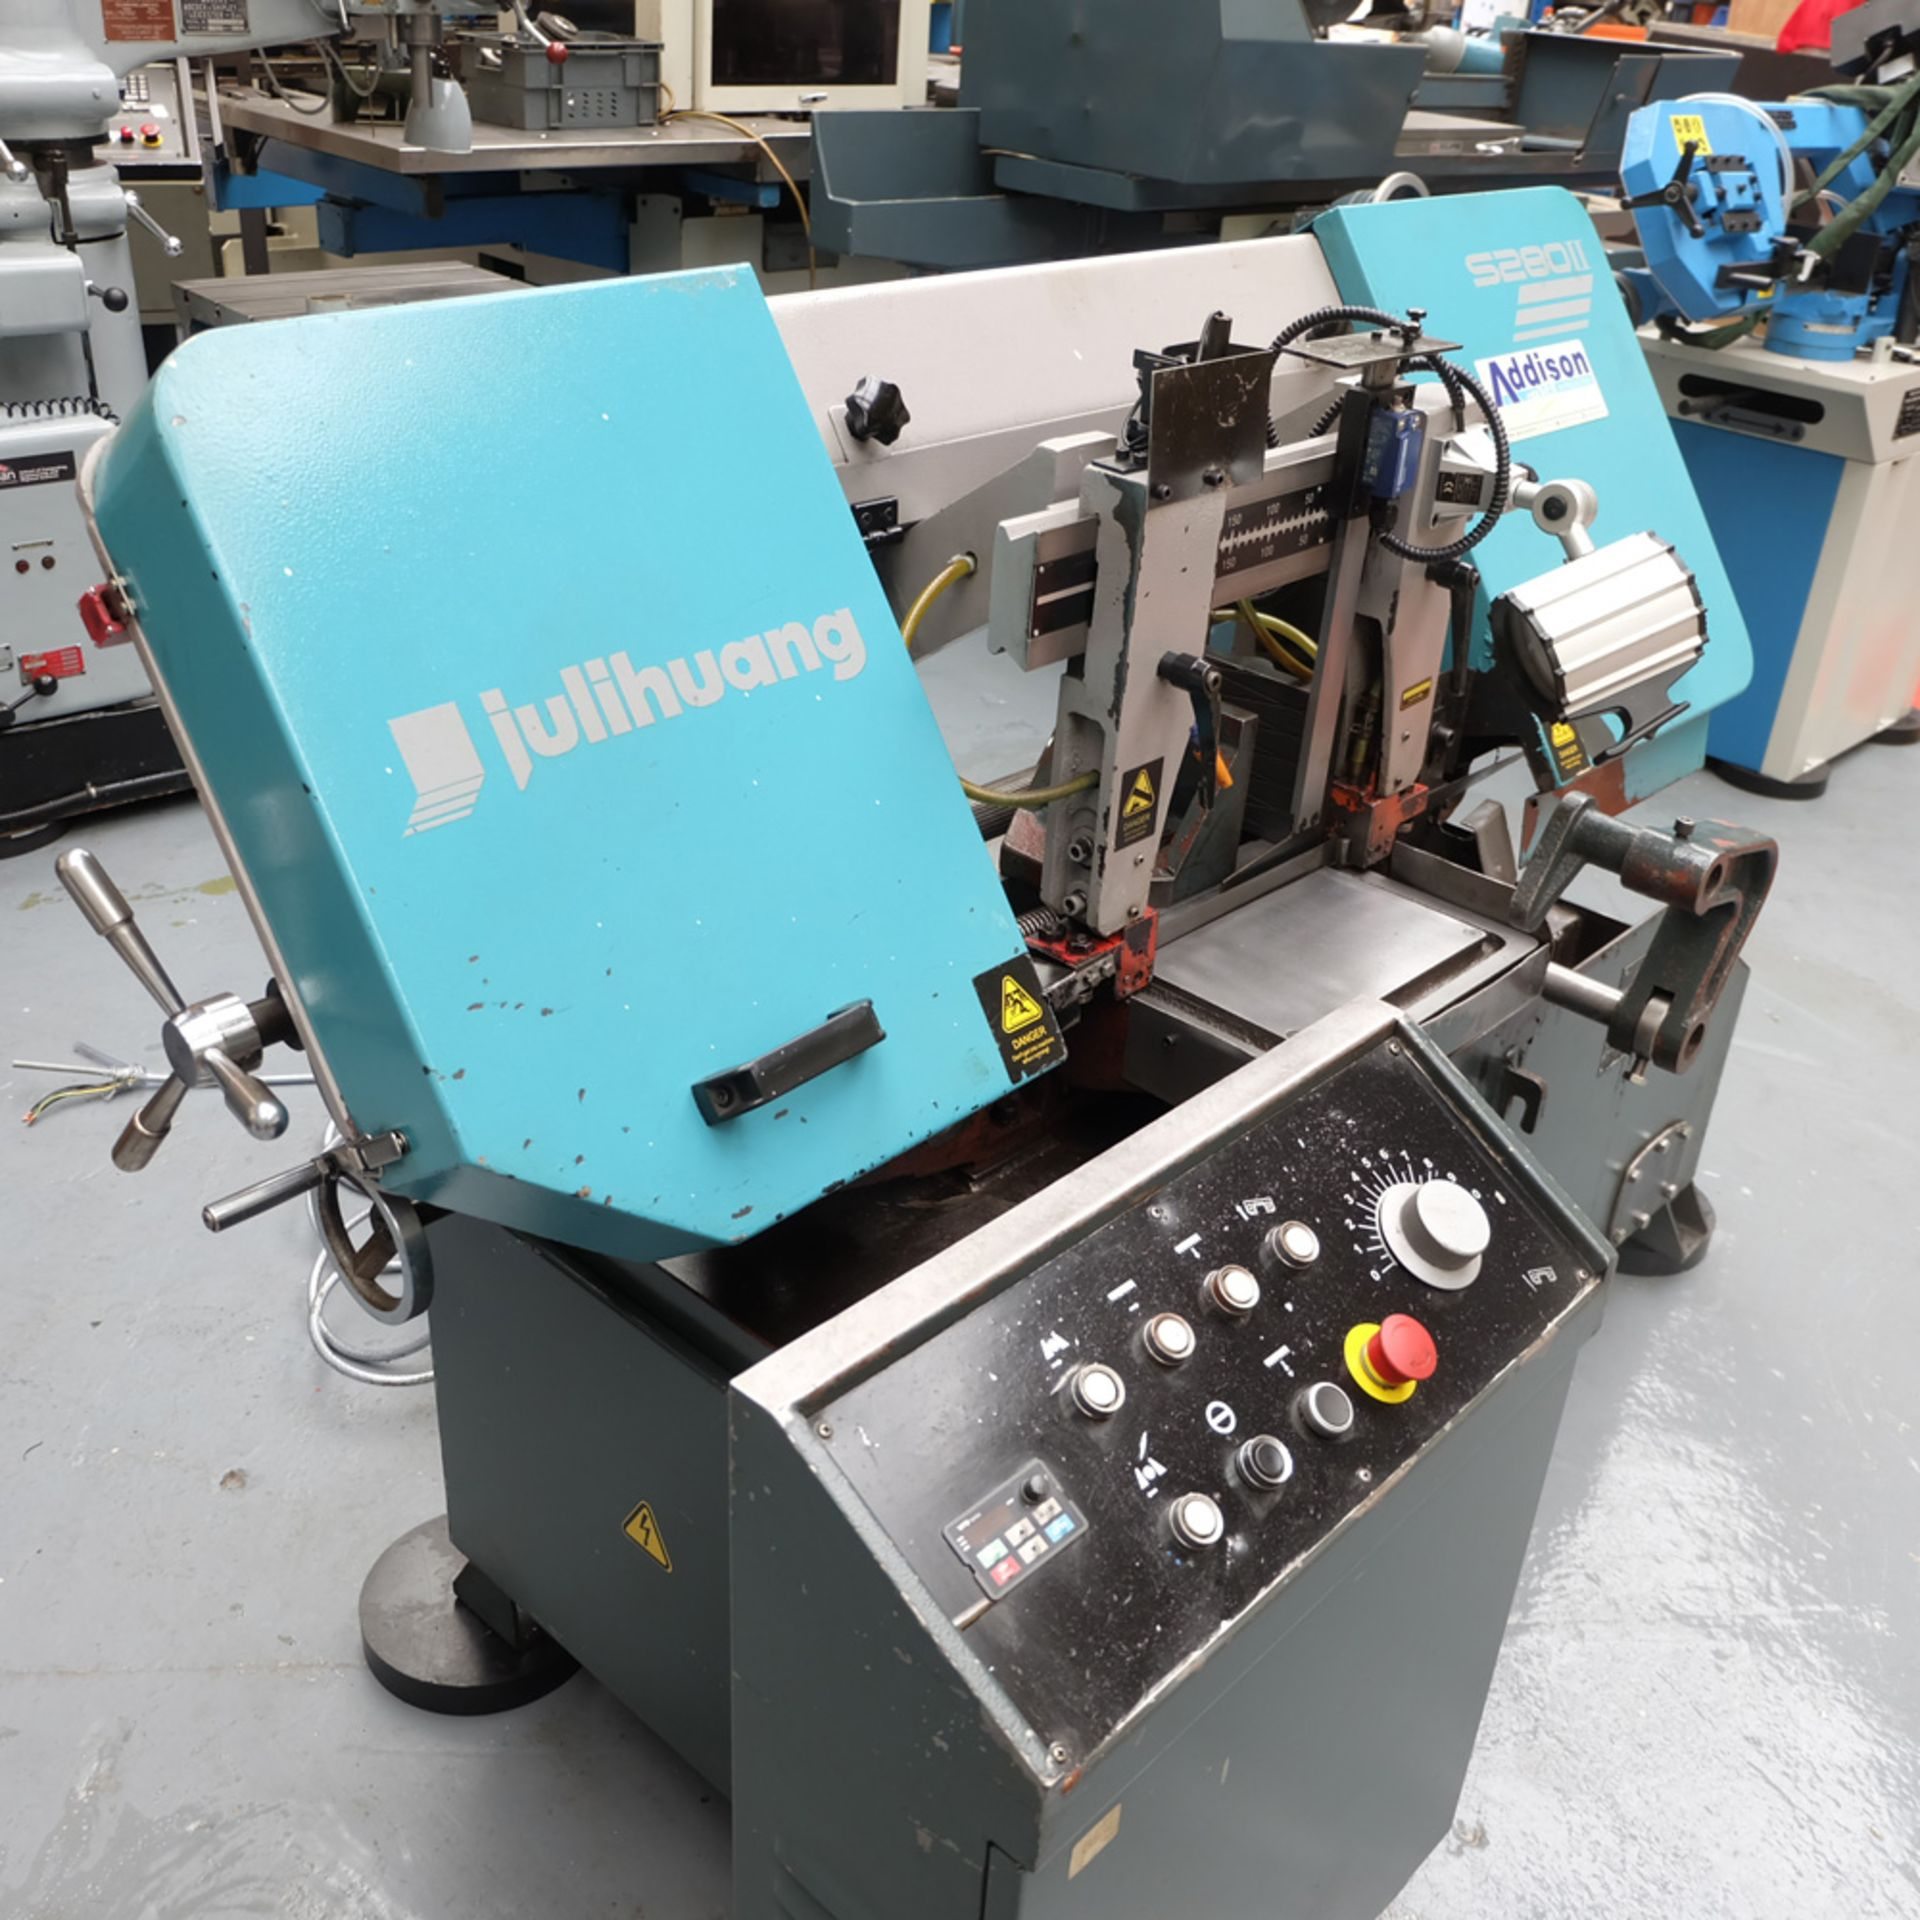 Julihuang By Addison Model S280 MKII Semi-Auto Horizontal Bandsaw. - Image 2 of 9